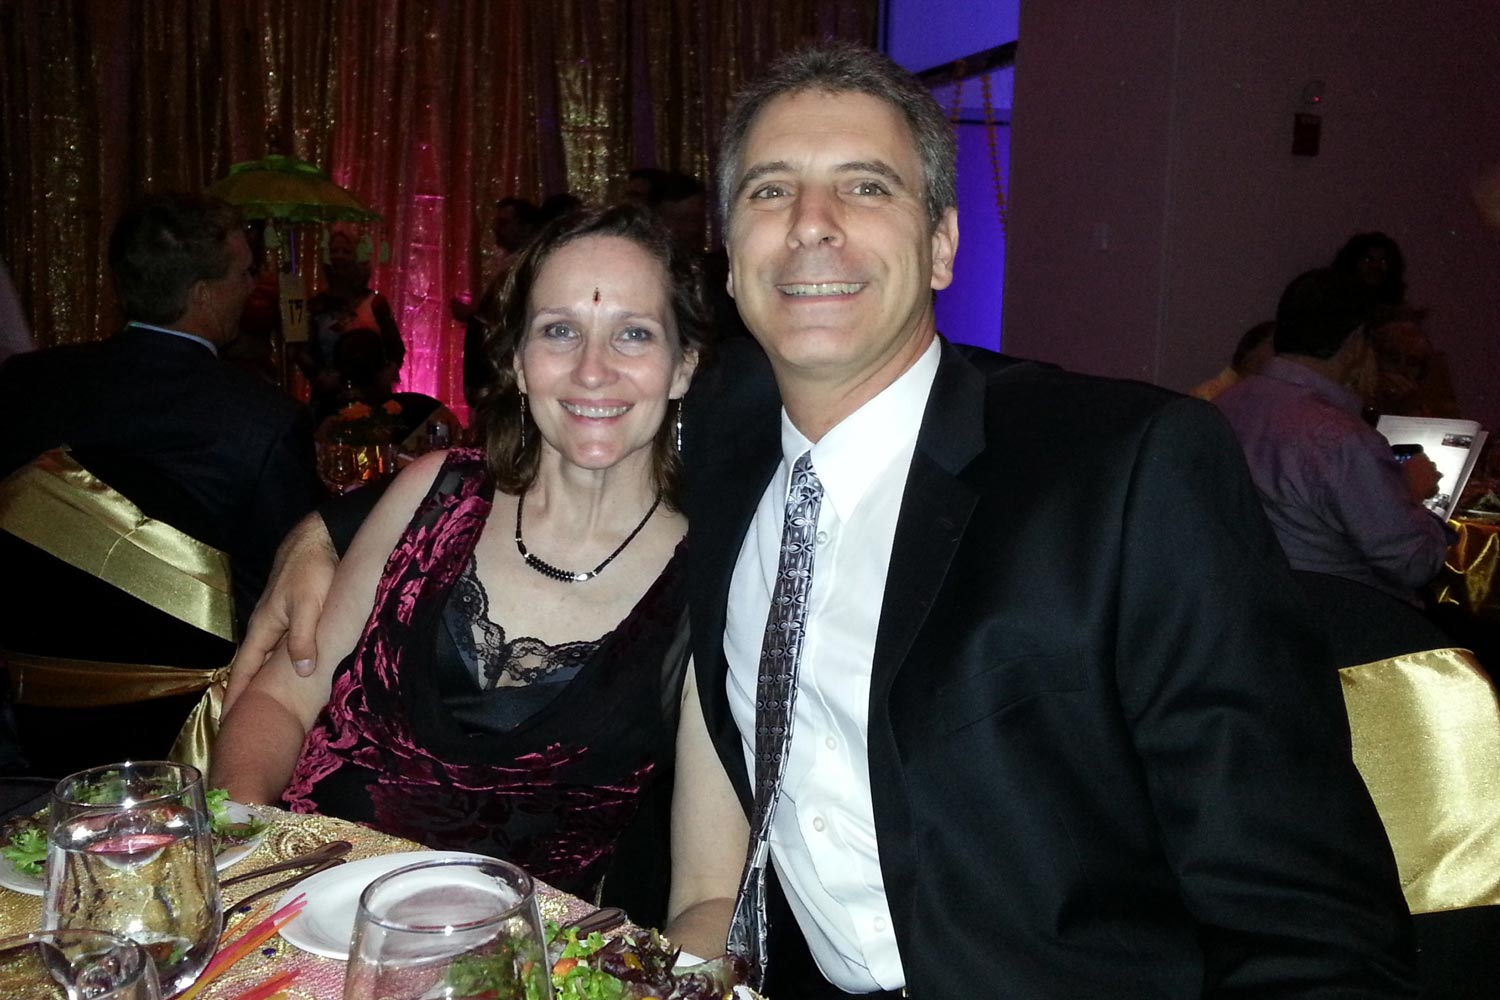 Mary Ellen and Rob Isaacson met at UVA in 1986 and got married in 2001. (Contributed photo)